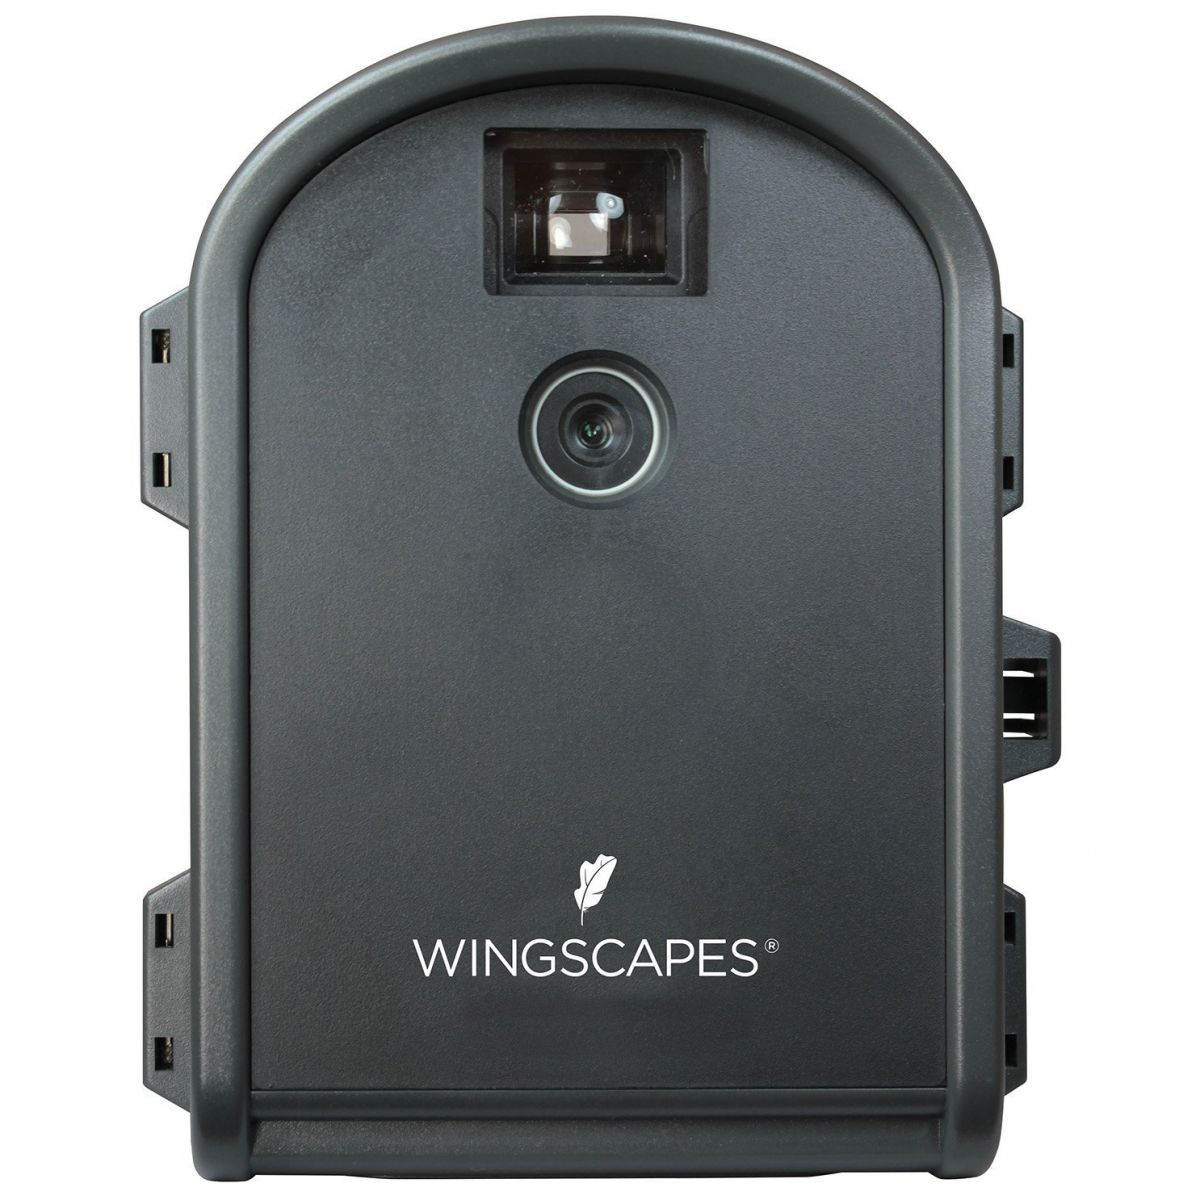 Wingscapes TimelapseCam